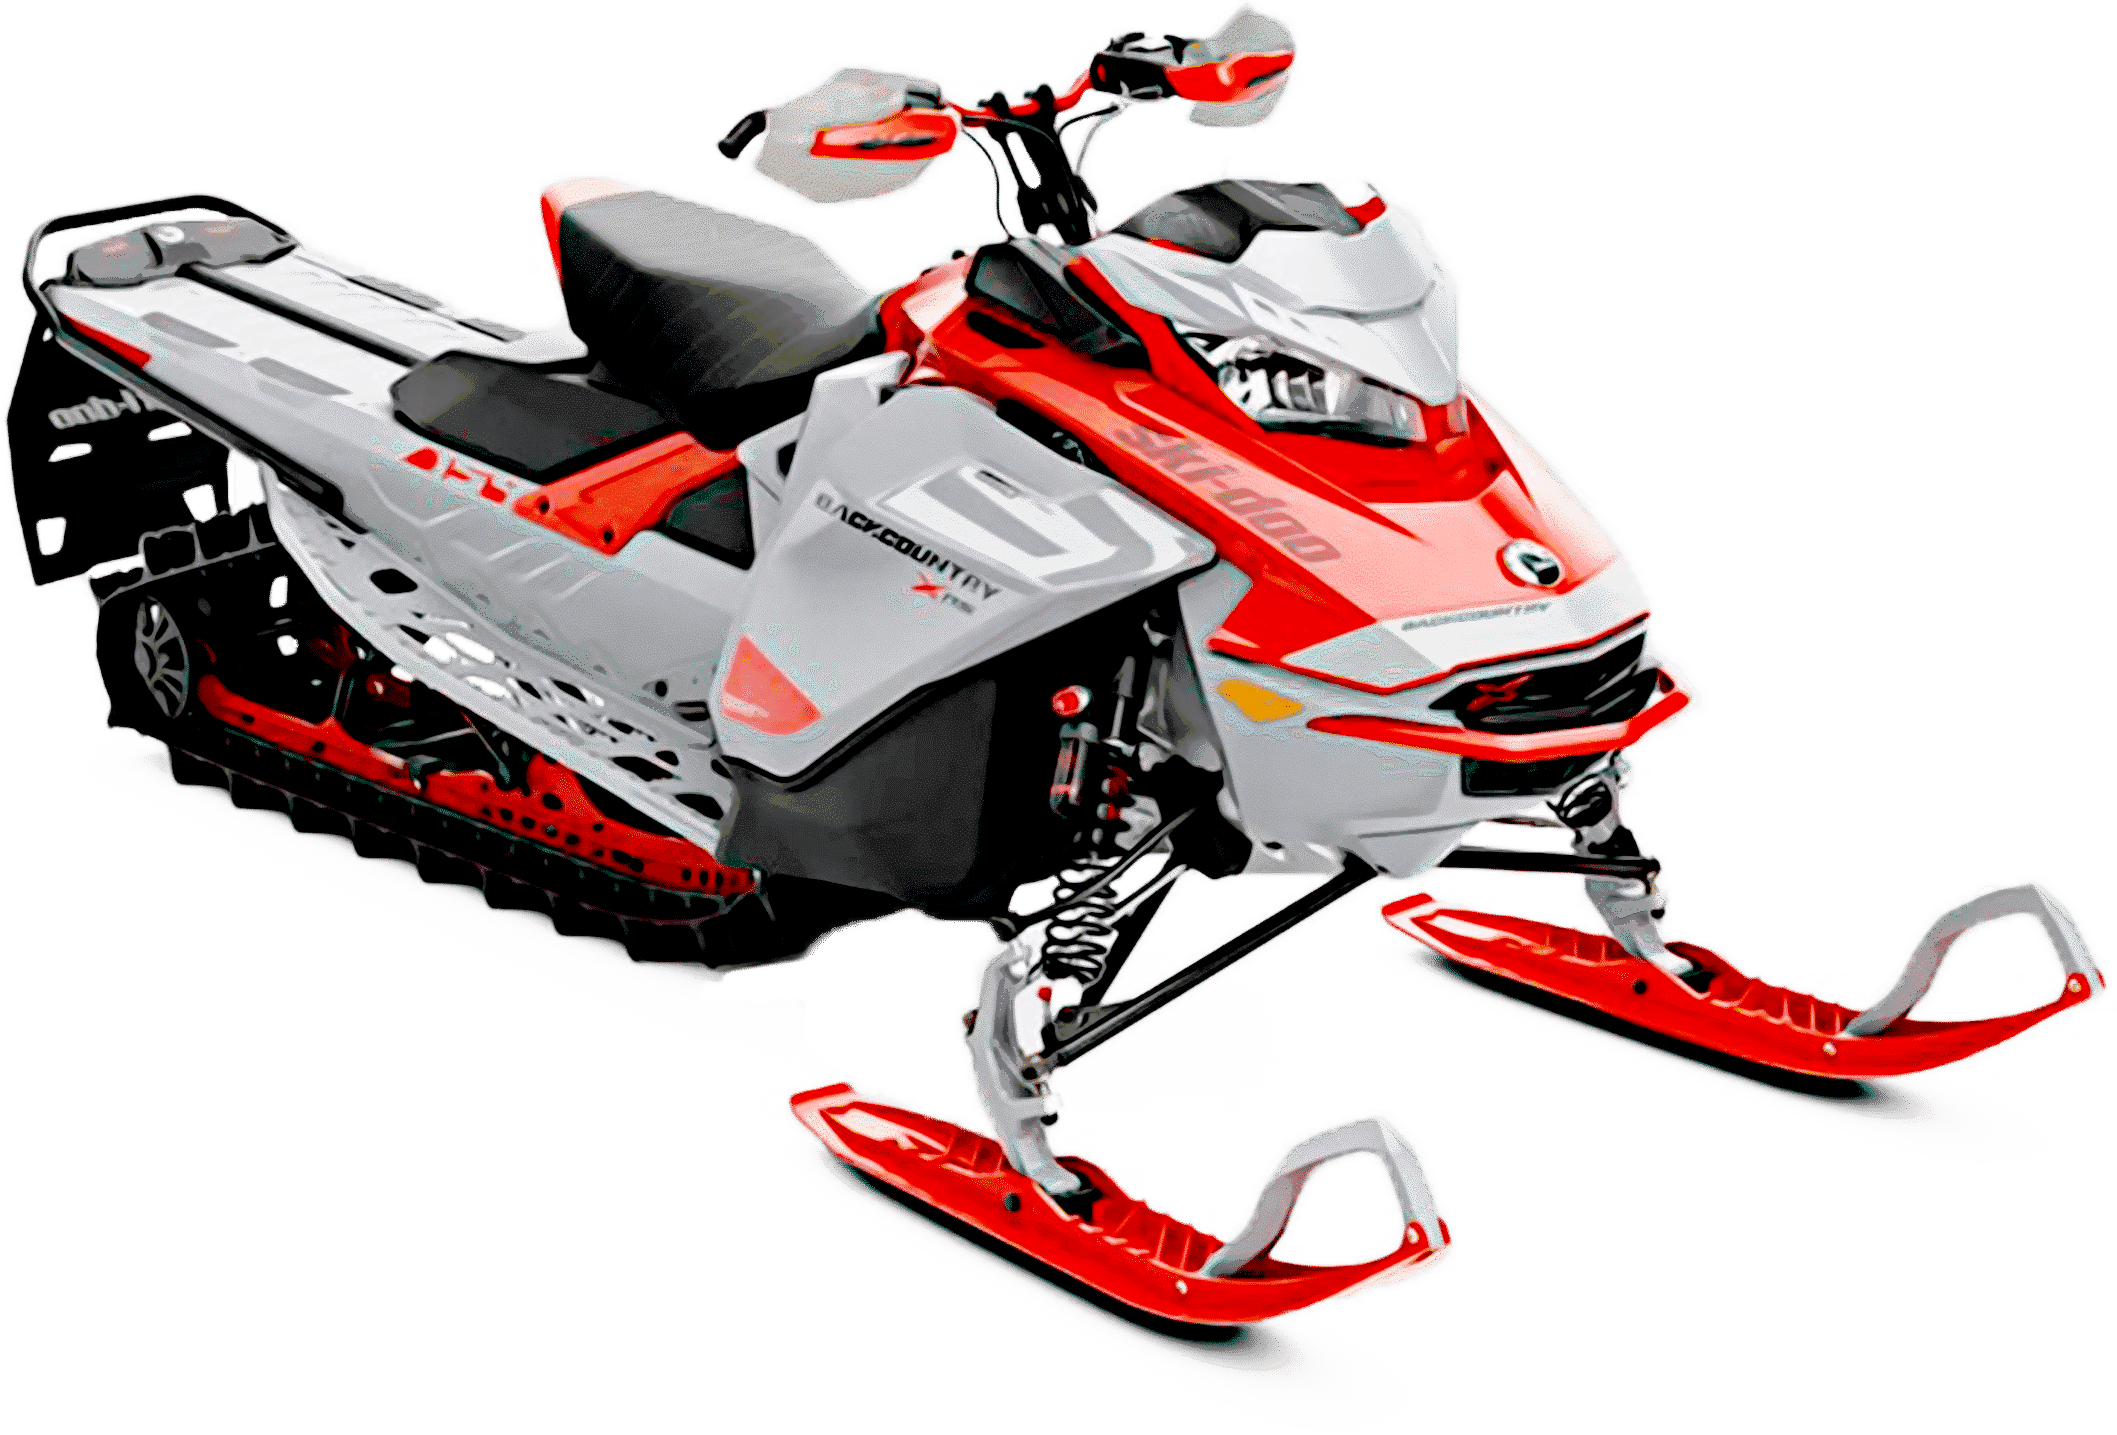 Ski-doo Backcountry 3